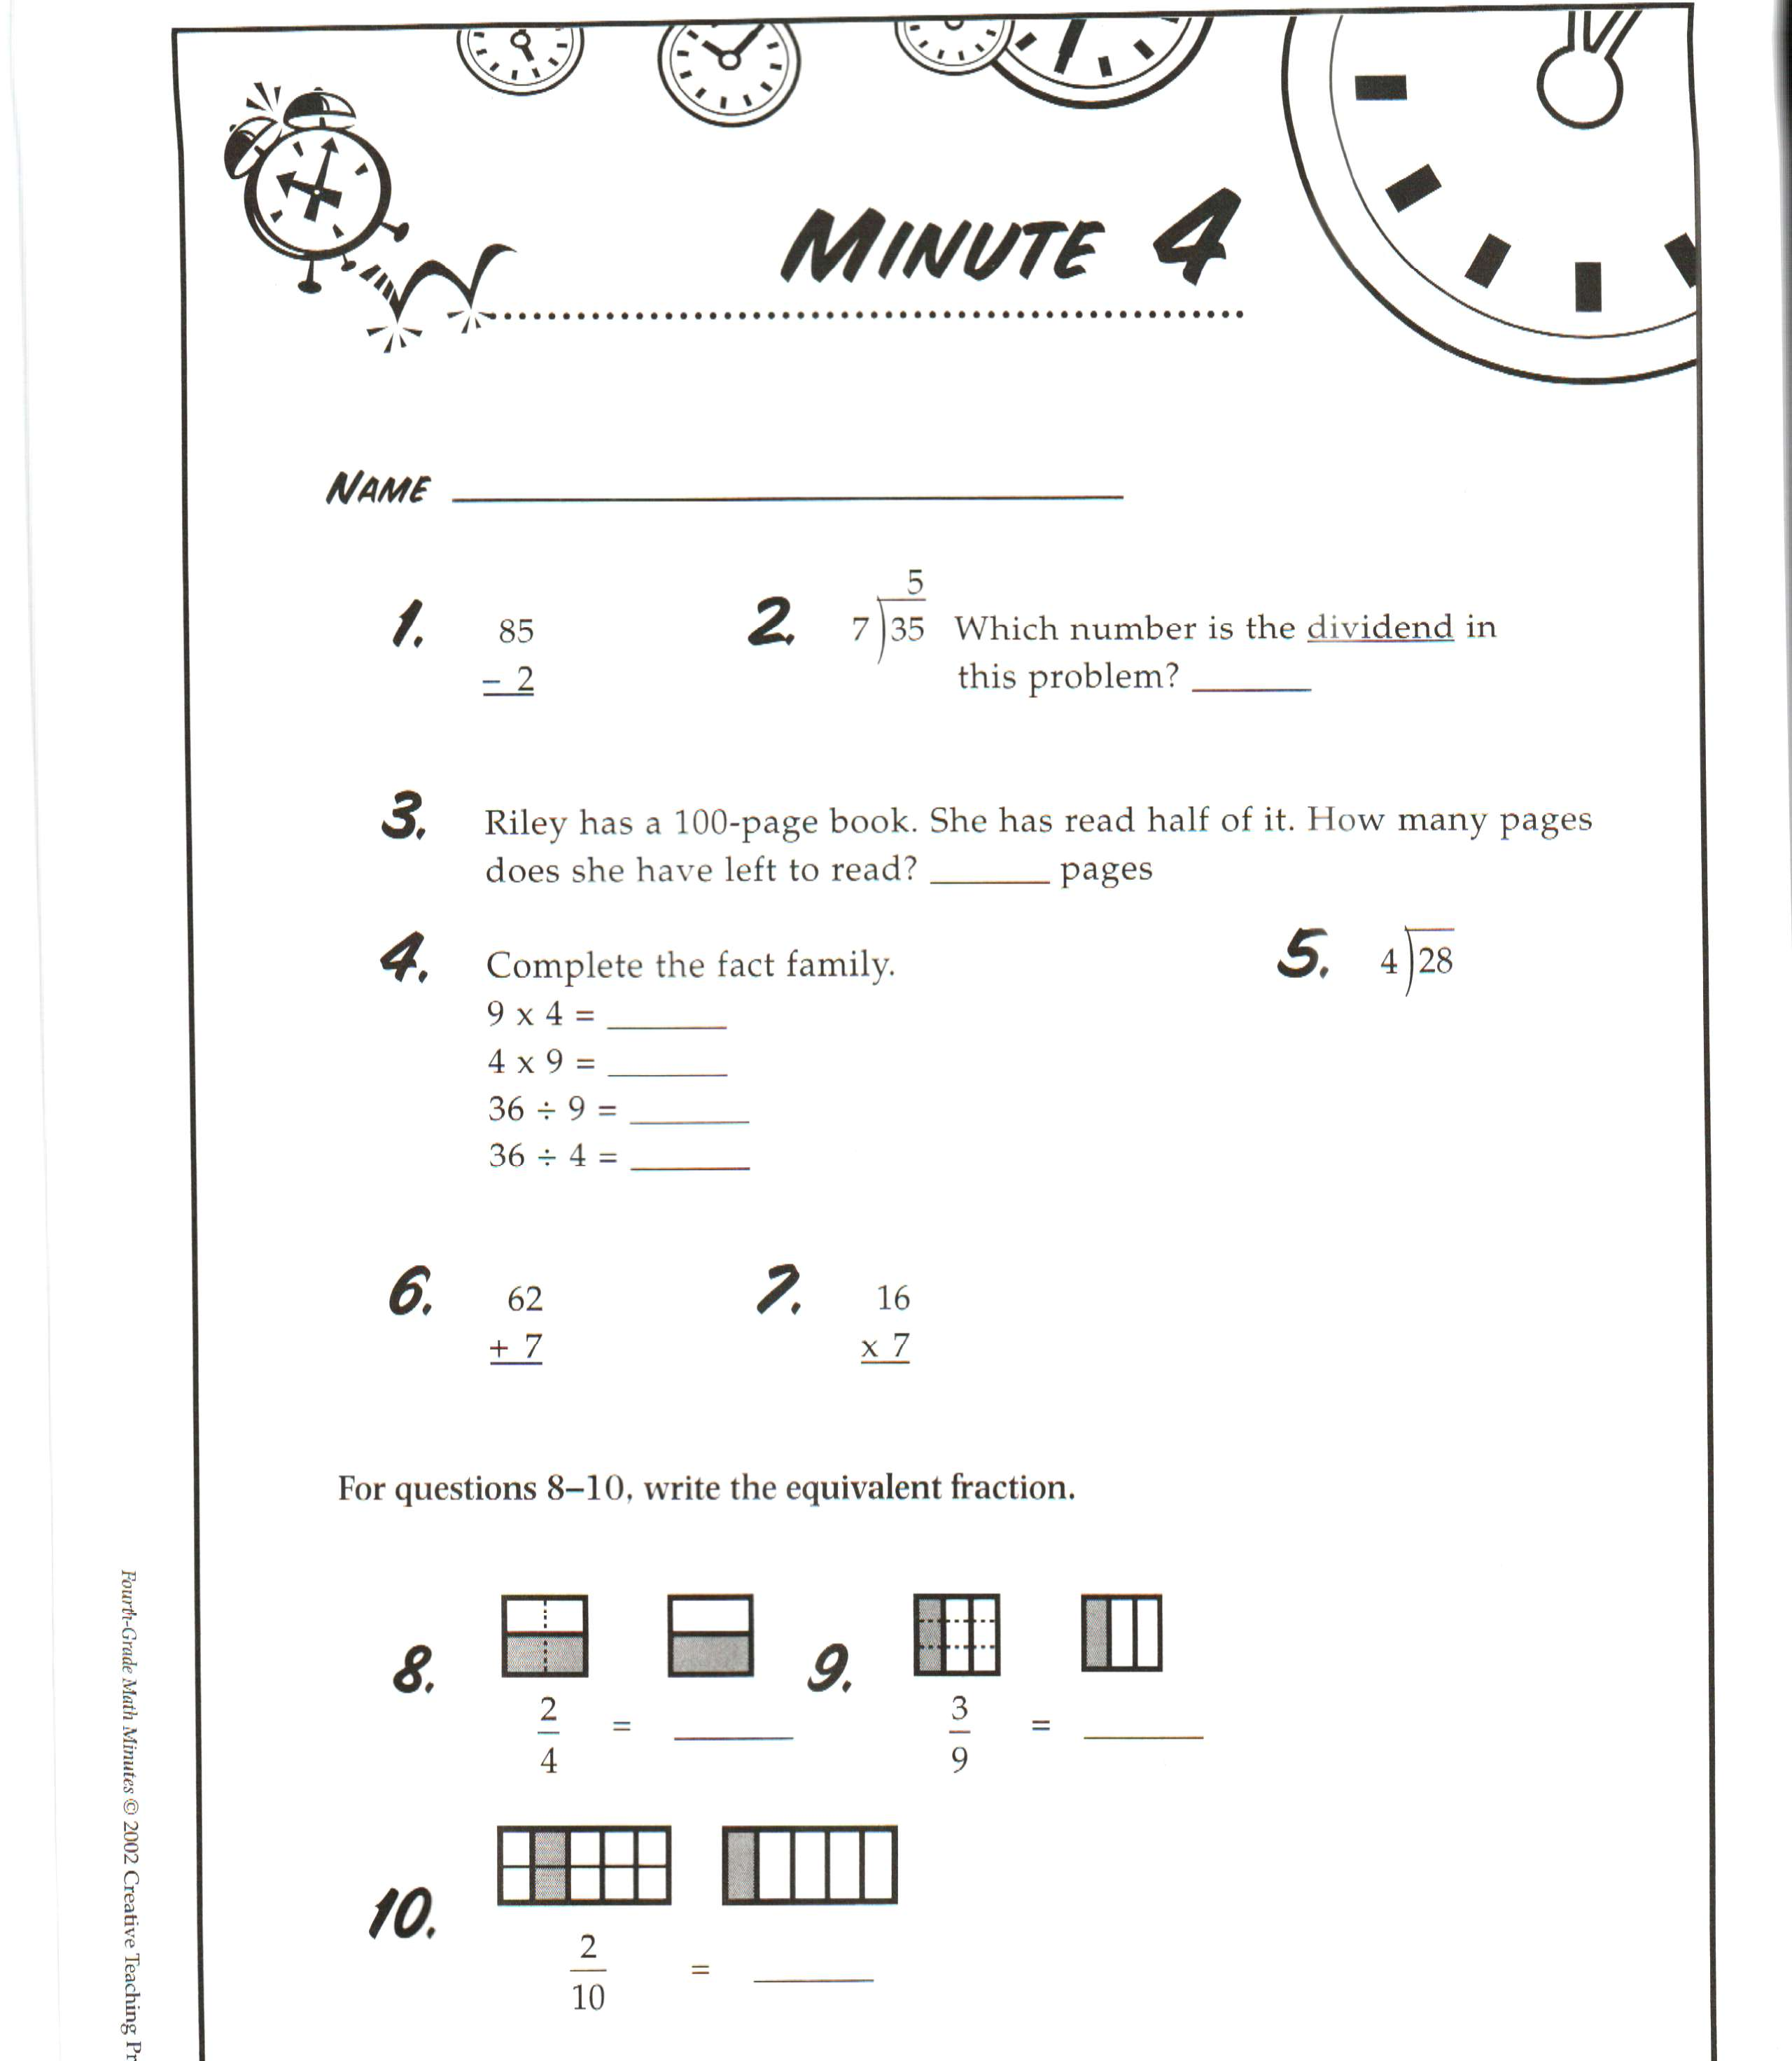 3rd grade math minute worksheets